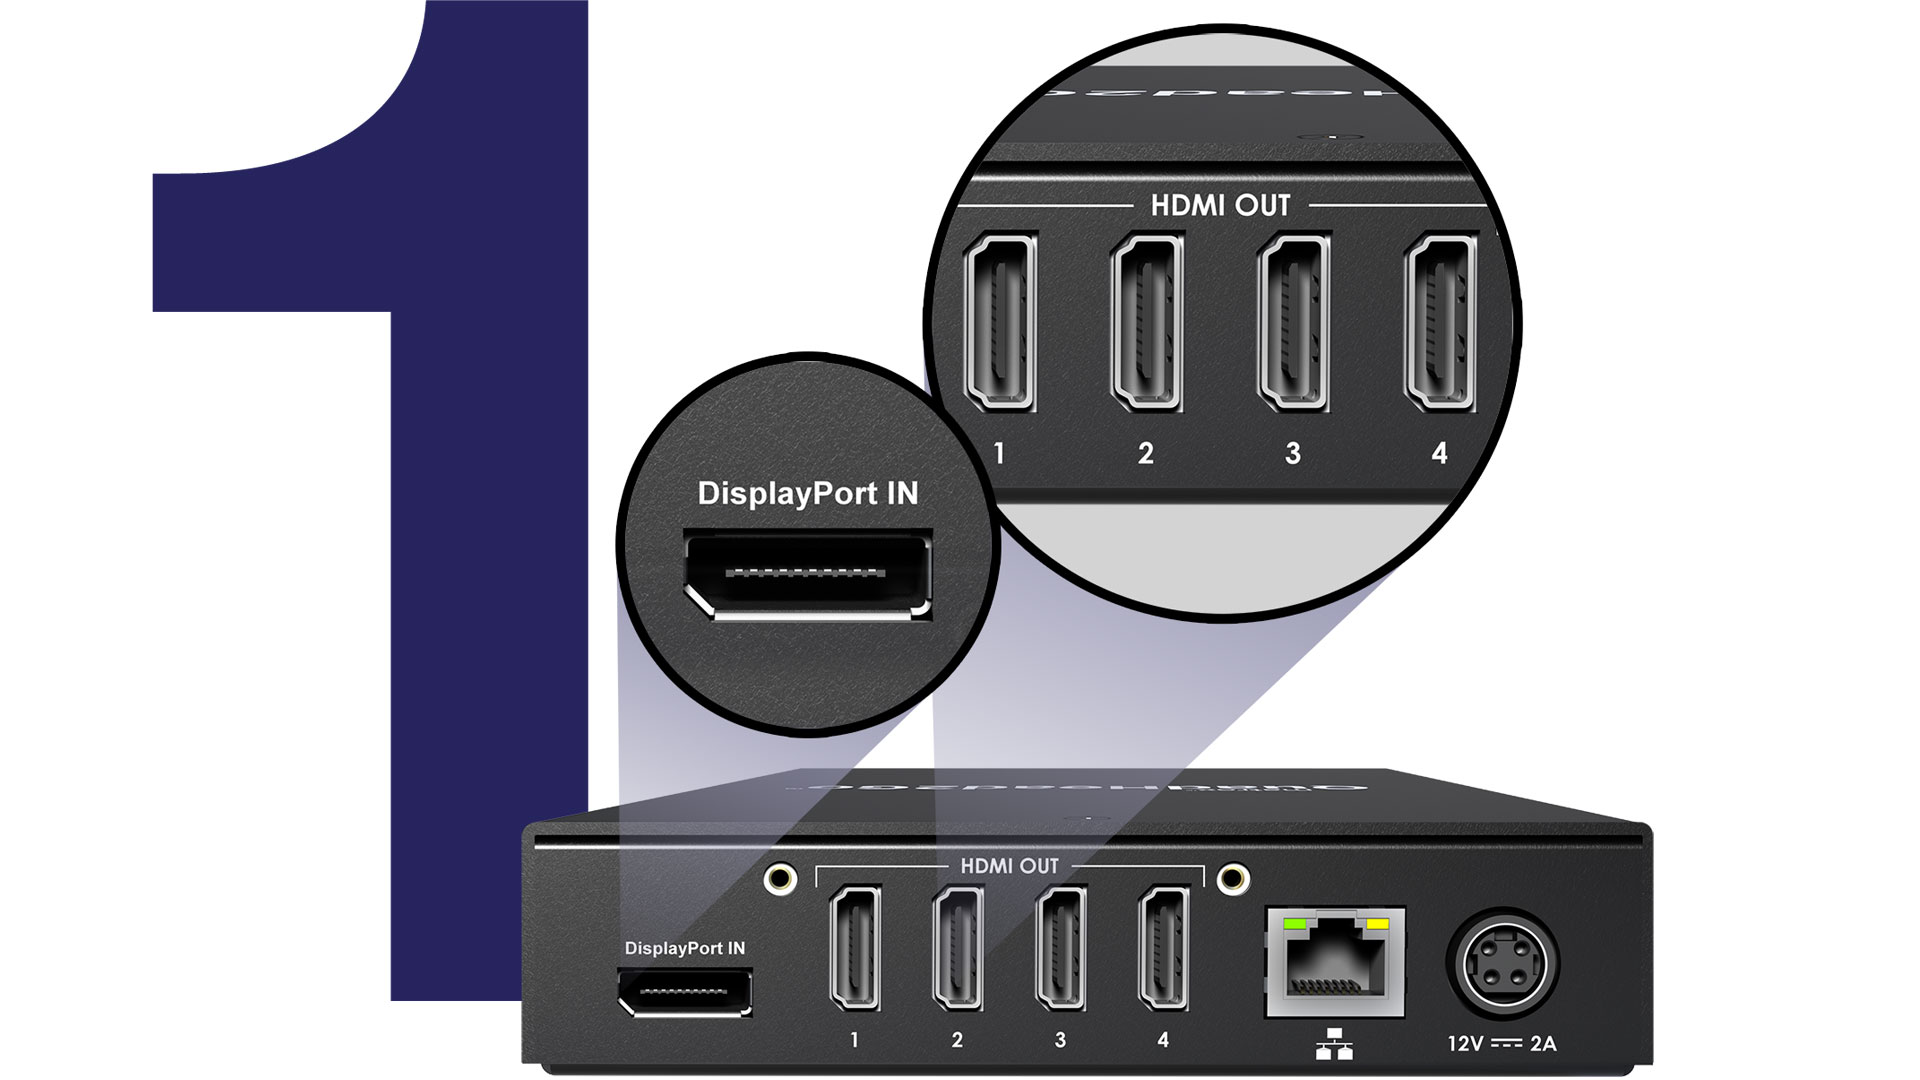 Connect using DP 1.2 input and 4 HDMI outputs